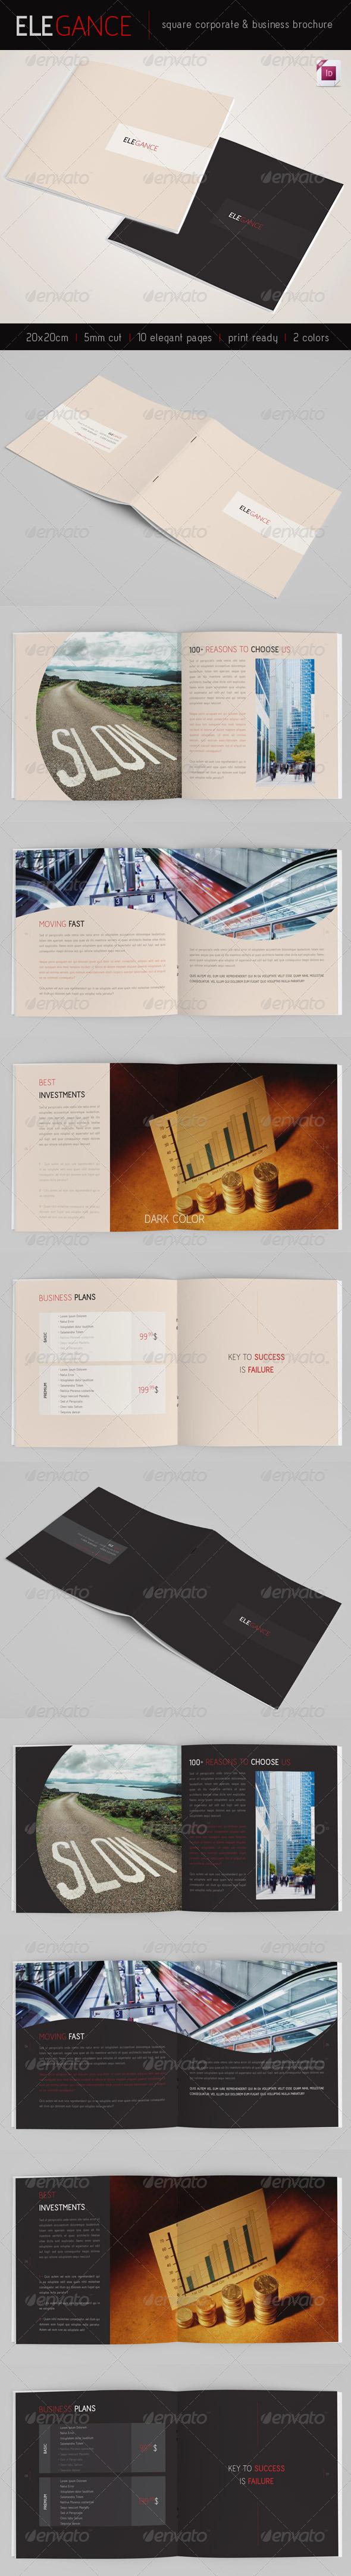 GraphicRiver Elegance Square 10 pages Brochure 2 Colors 3337232